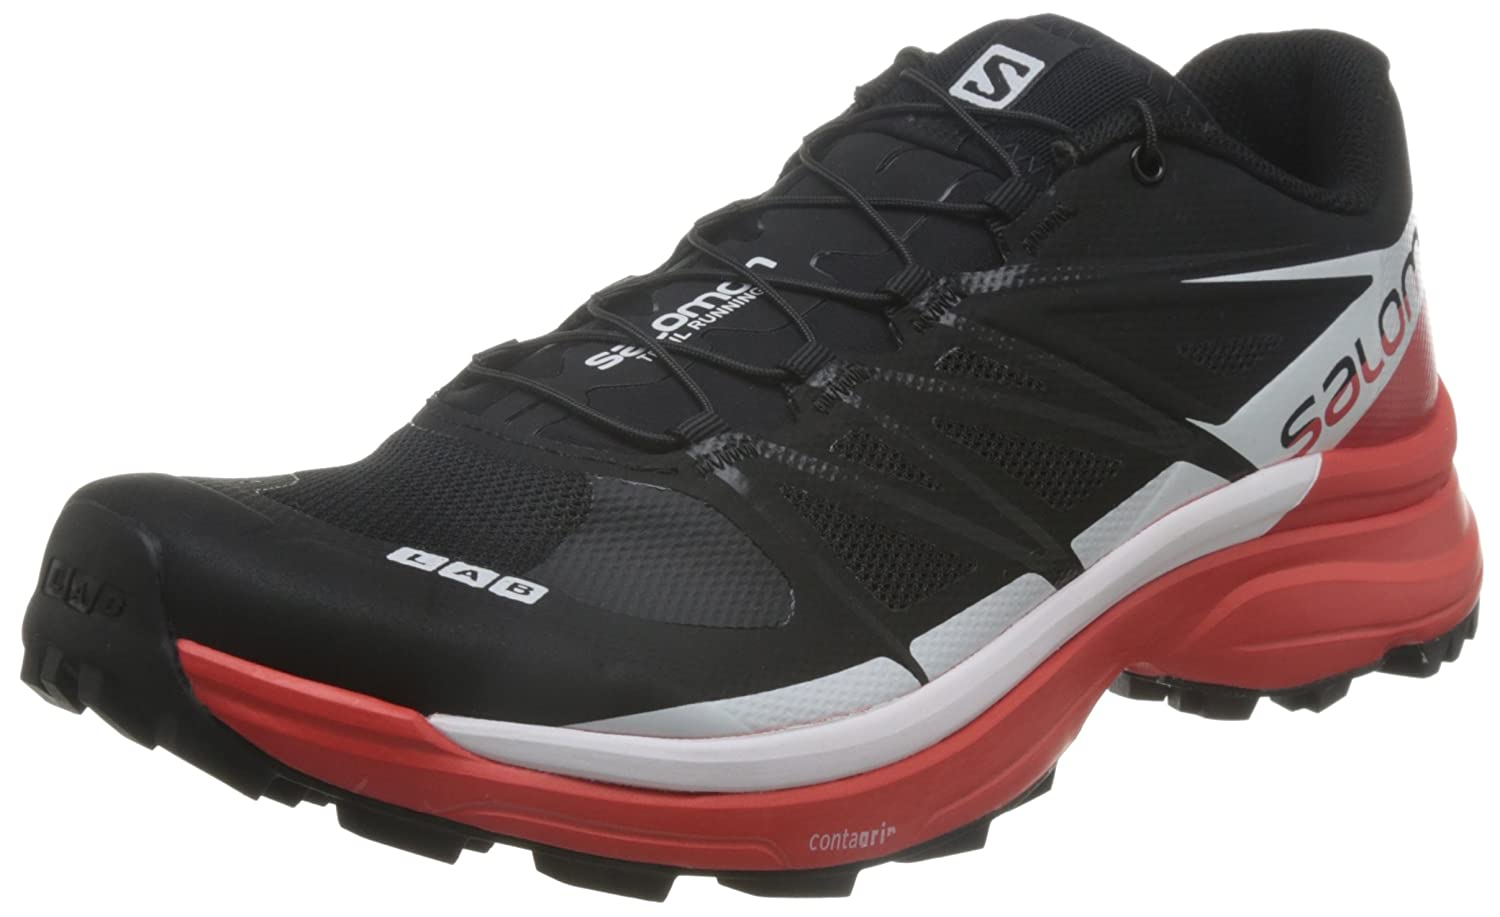 Salomon Unisex S-Lab Wings 8 SG Mesh, Textile Running Sneakers B017SRSI6K 11 M US Women / 10 M US Men|Black, Racing Red, White